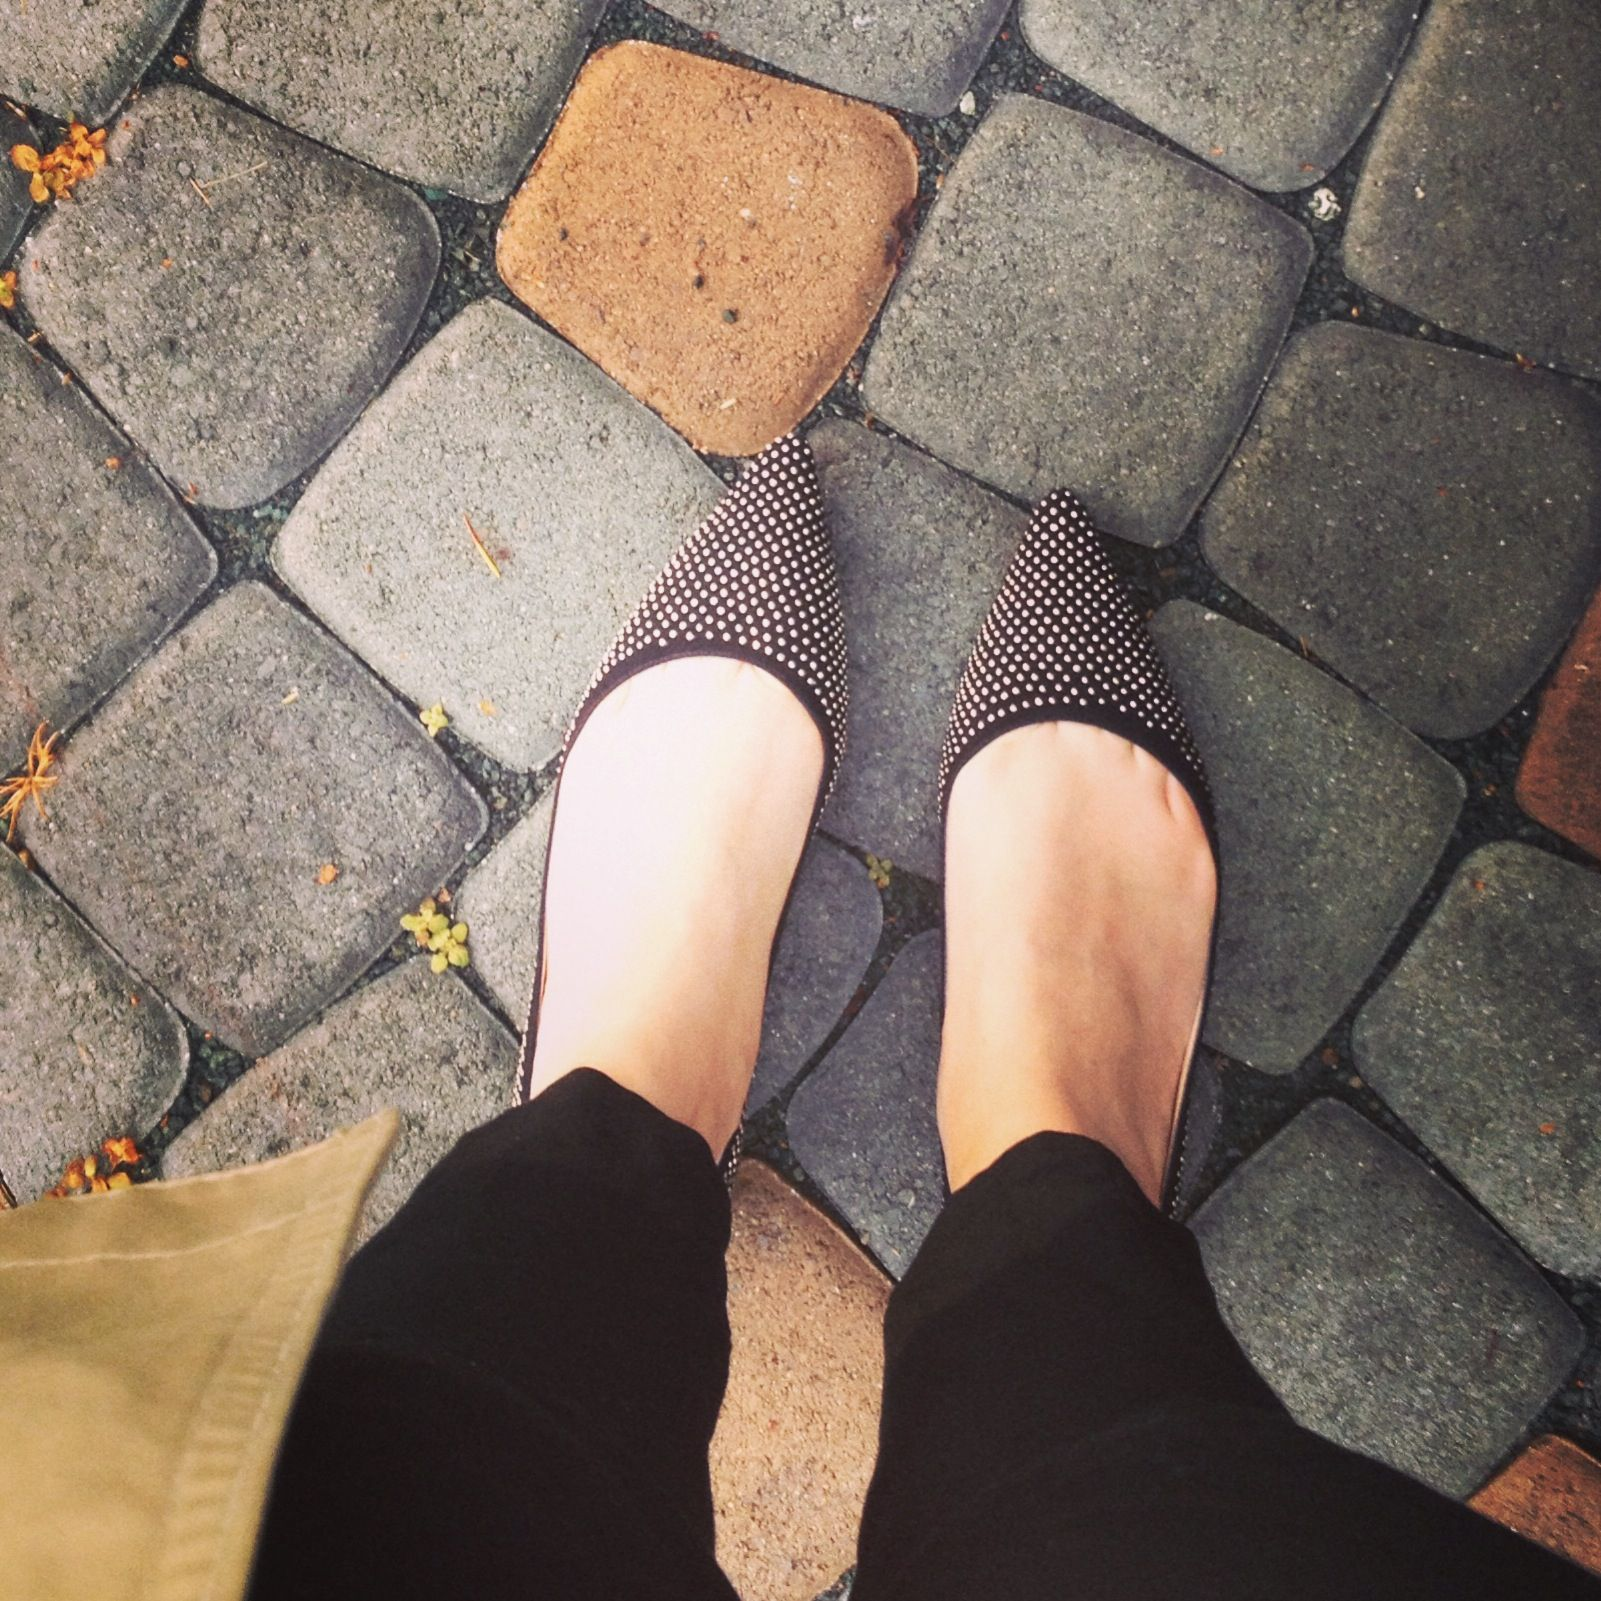 Jimmy choo flats, Fashion forward and comfortable.. Perfect for a mom and aunt on the go!